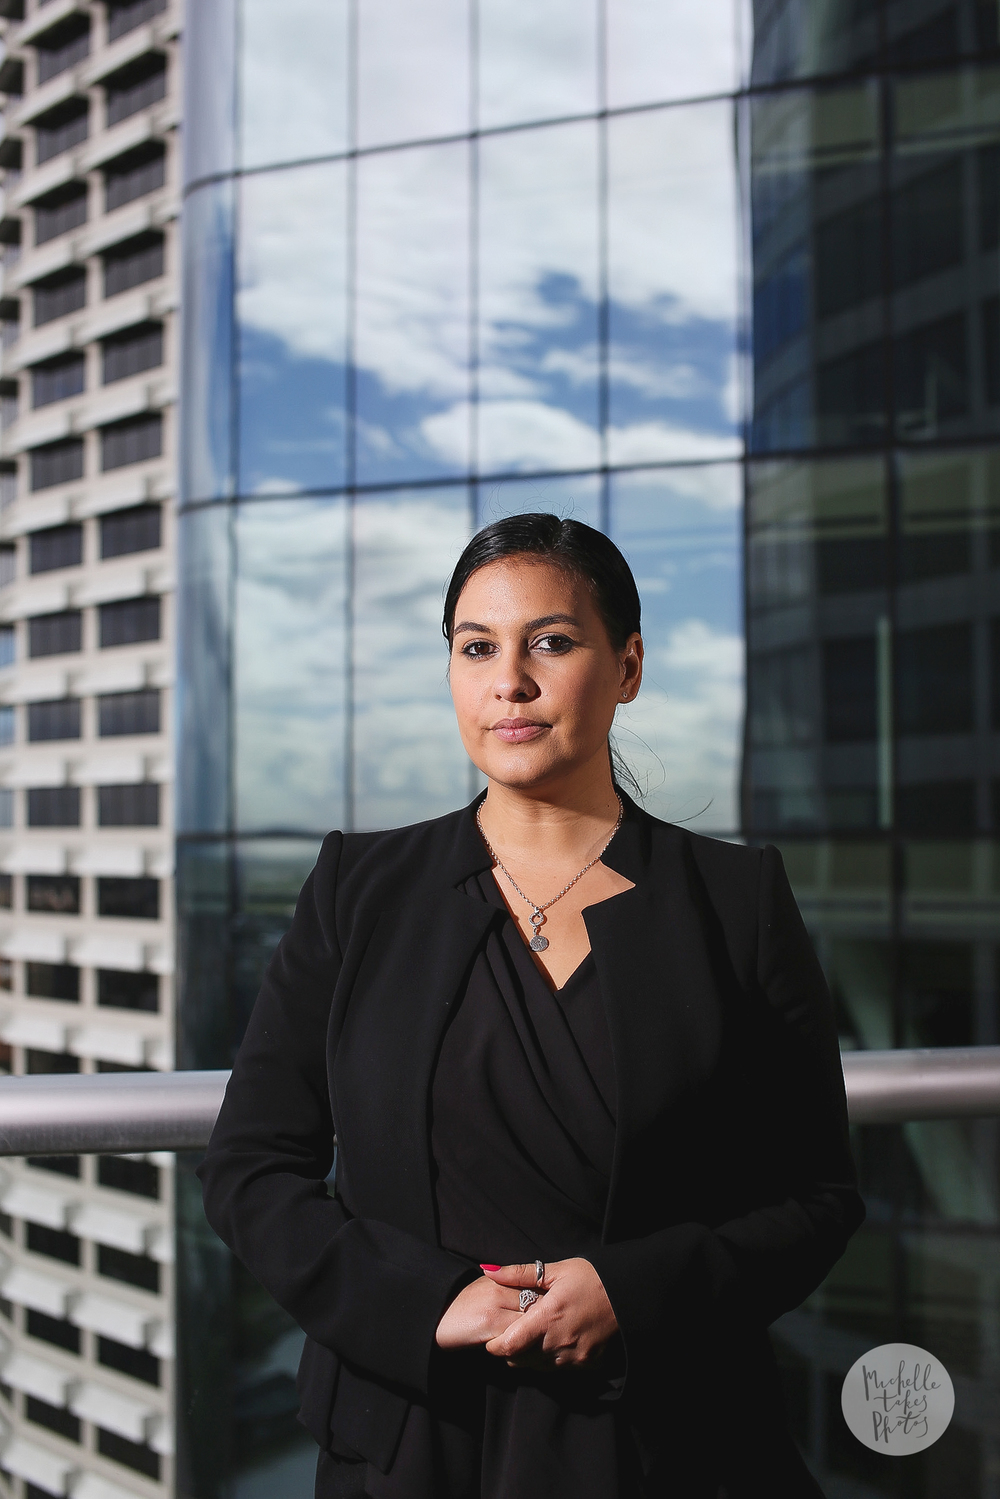 Indigenous Lawyer for Allens Linklaters, Jayde Geia, 28, poses for a photograph other office on Eagle Street.